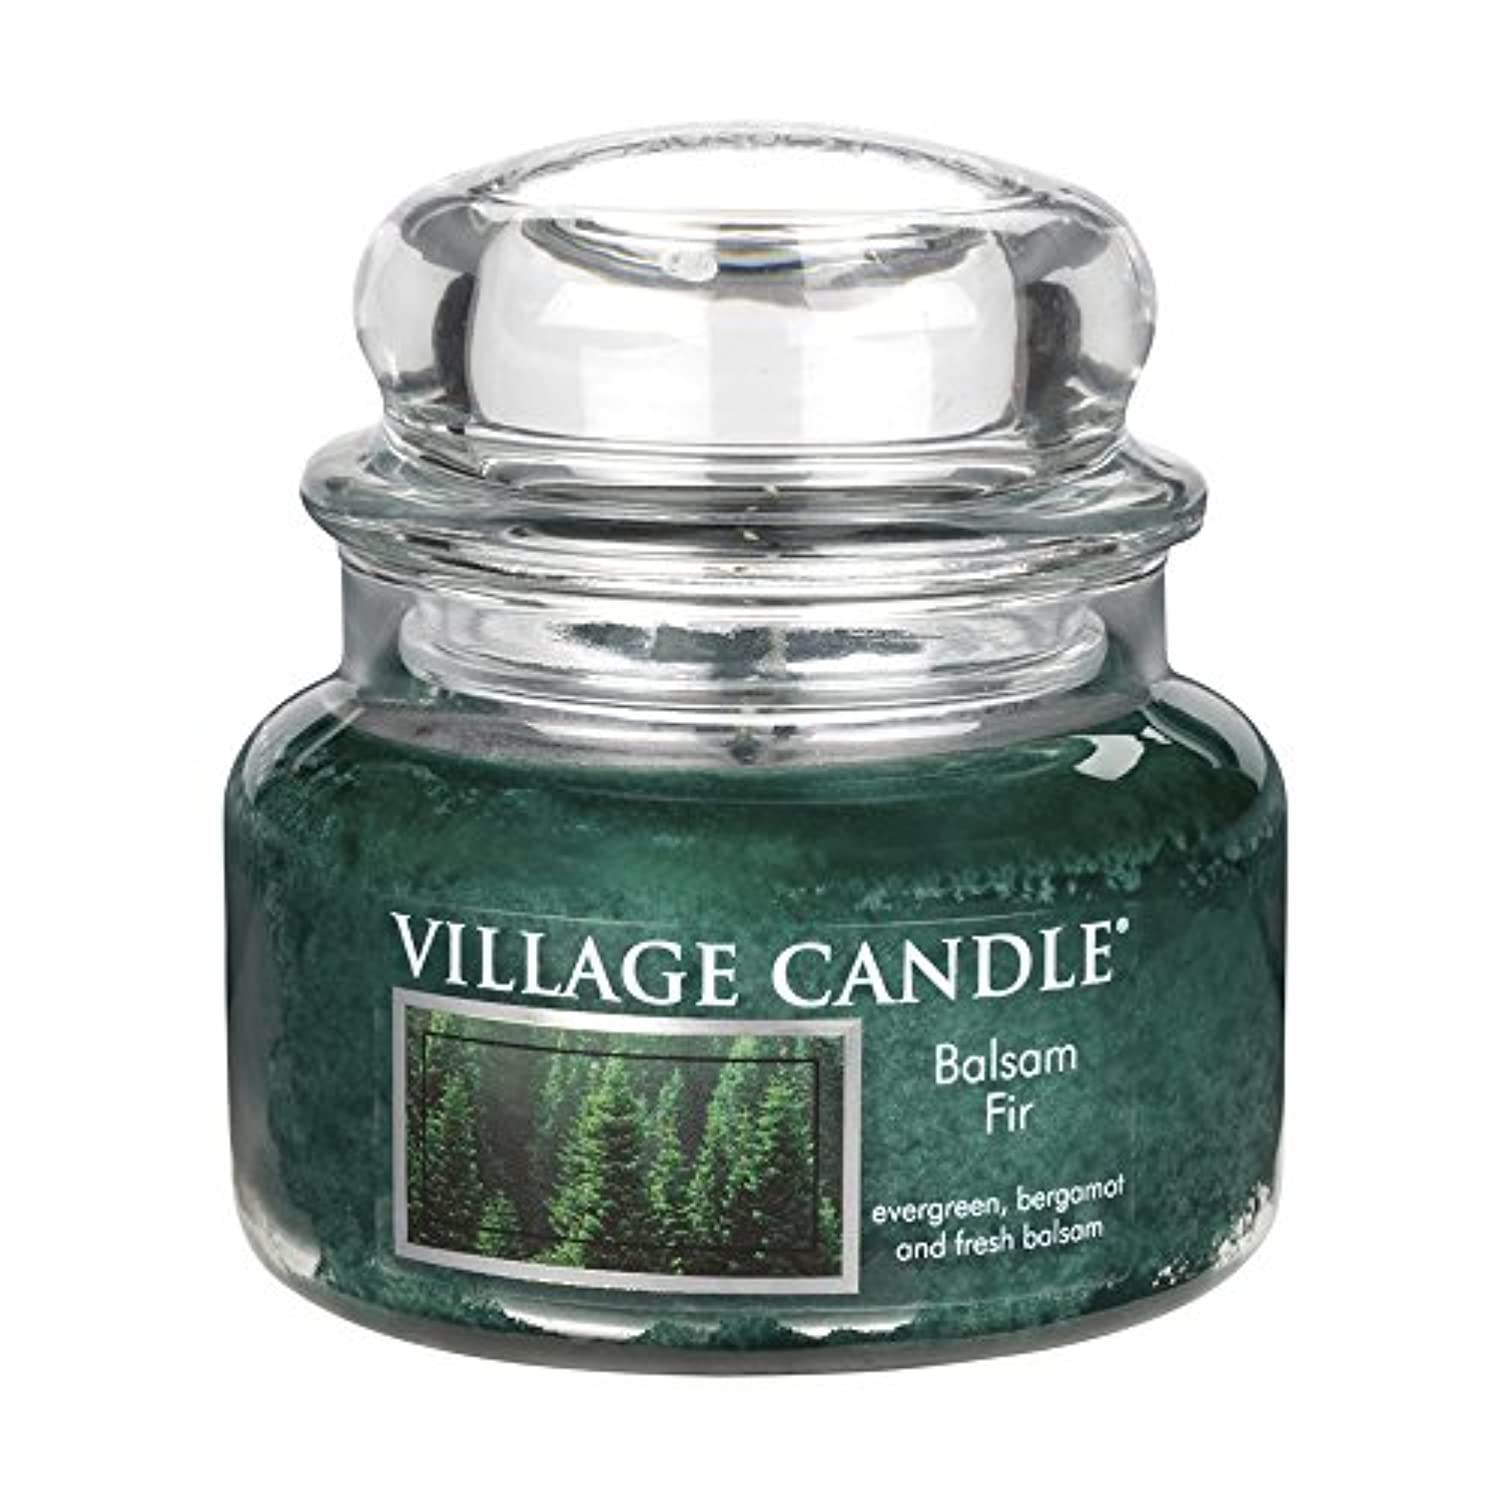 (Small (330ml)) - Village Candle Balsam Fir 330ml Glass Jar Scented Candle, Small